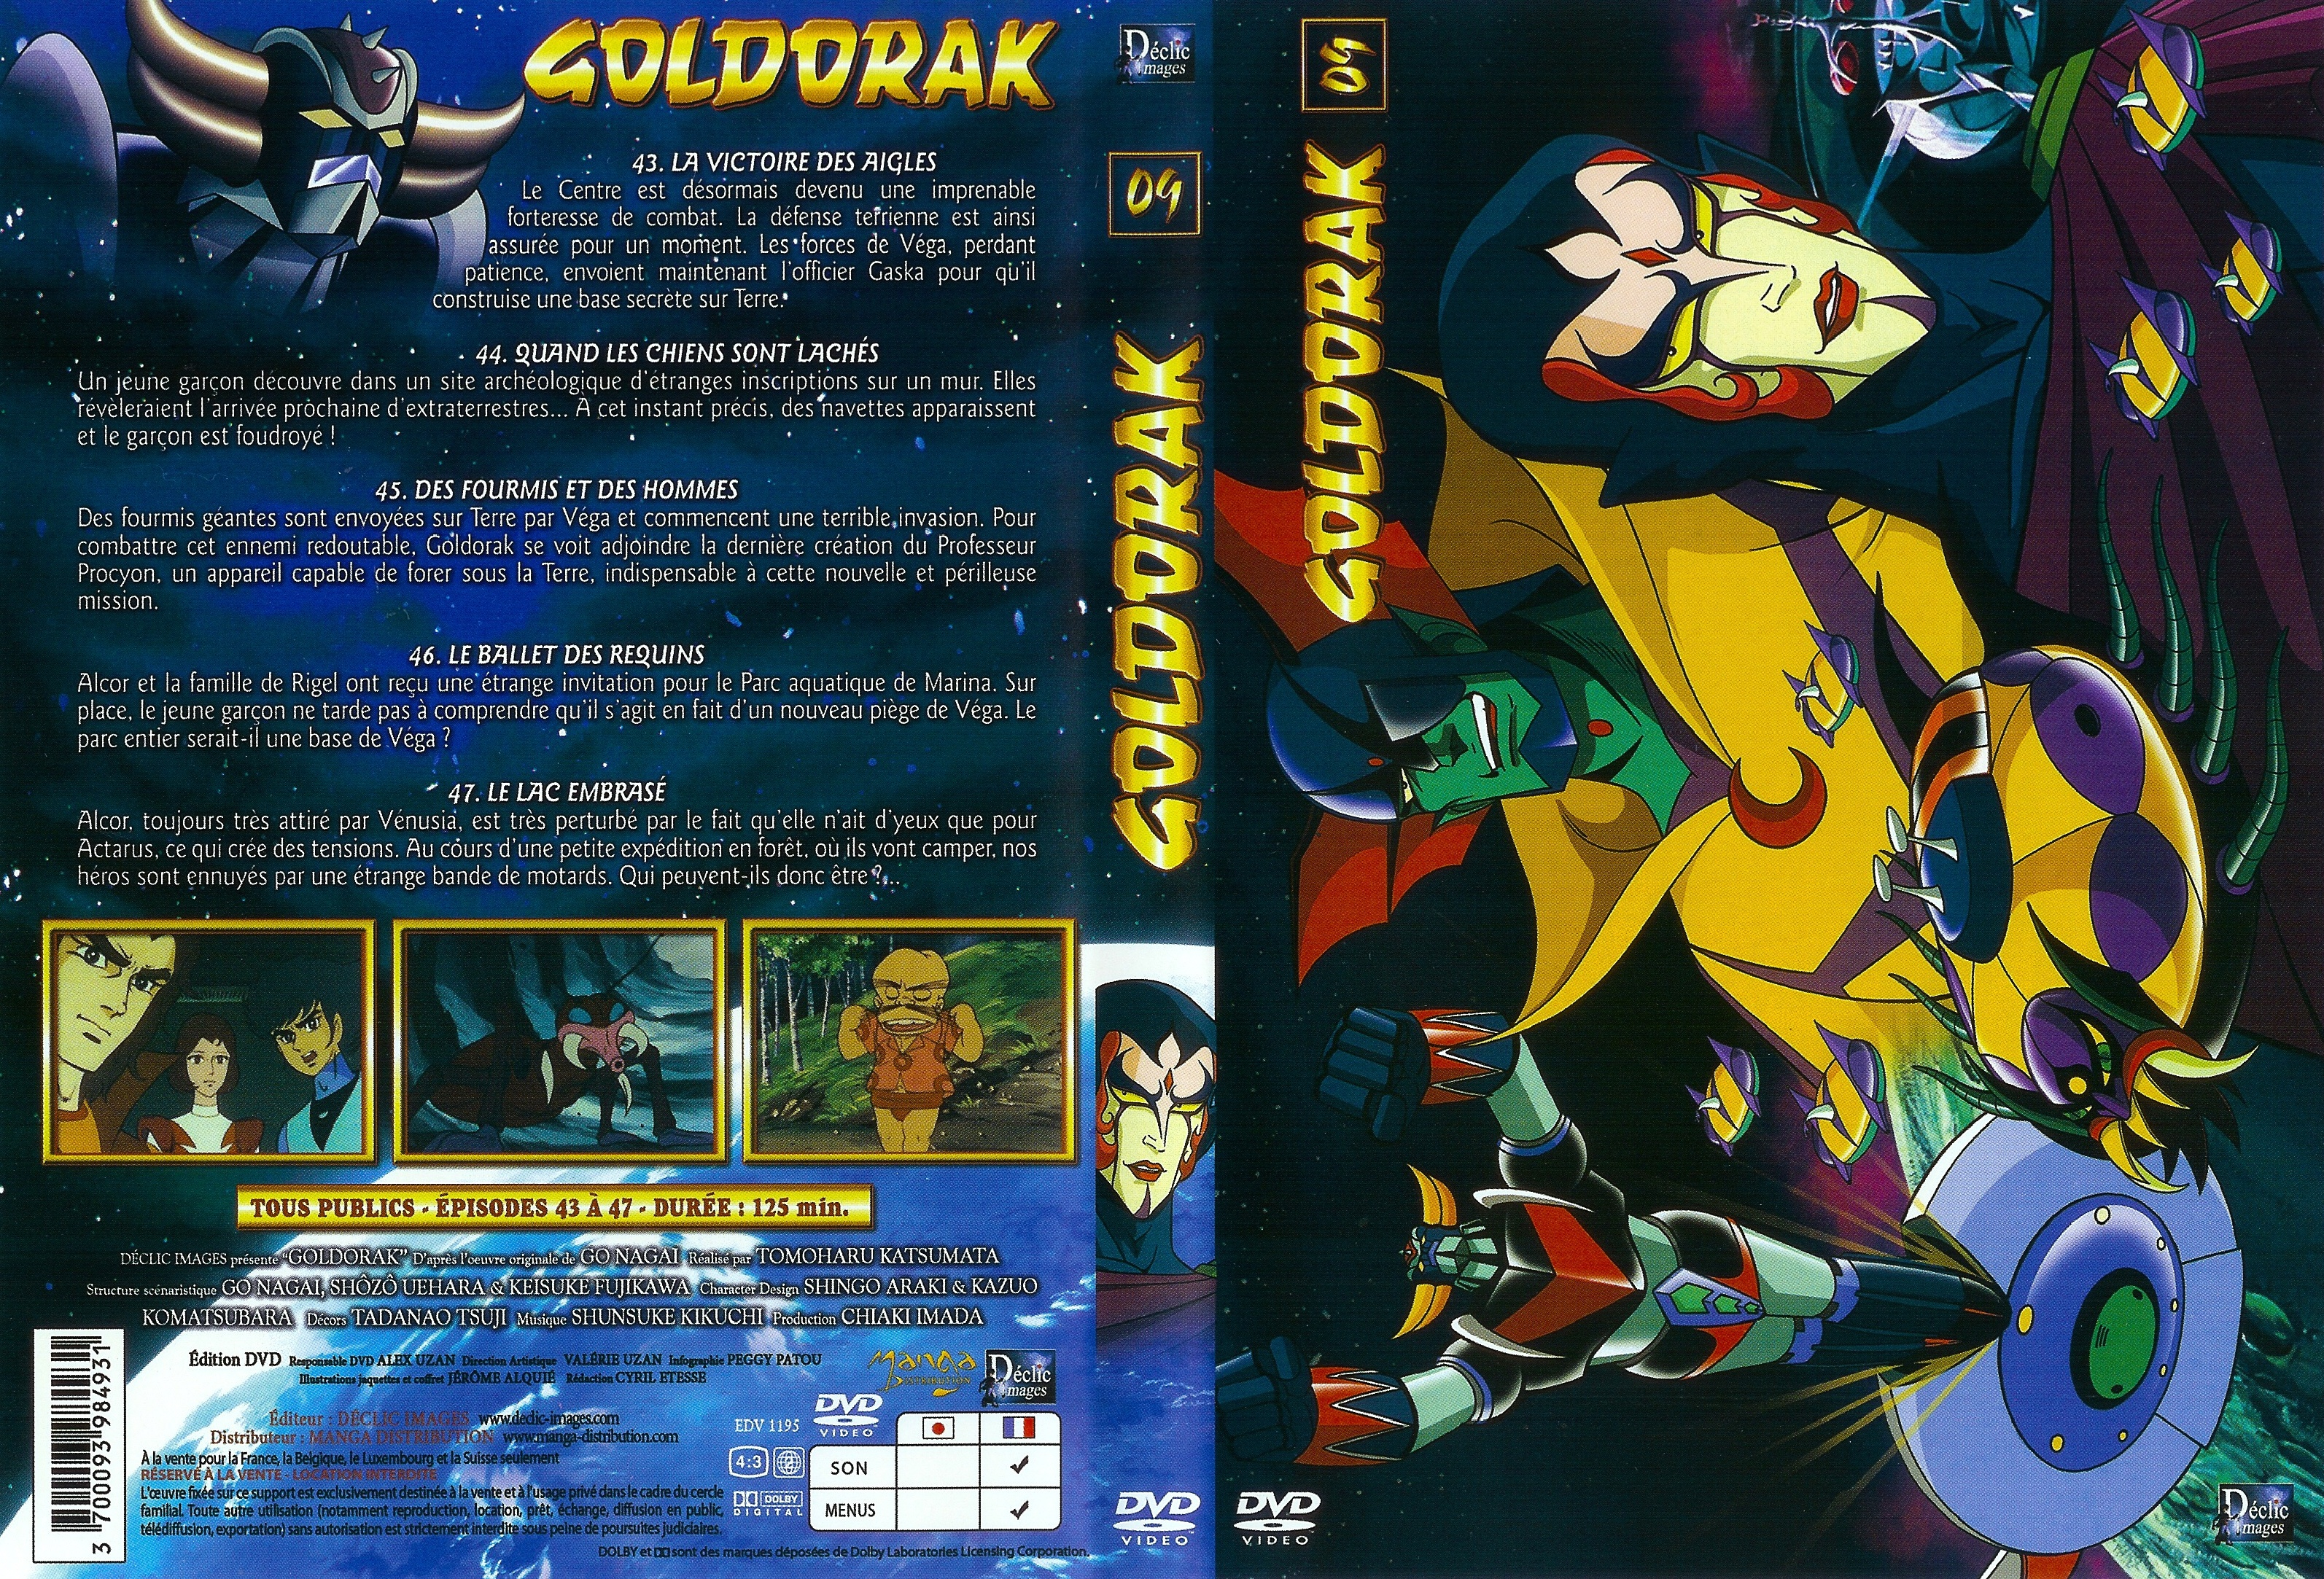 Goldorak Vol09 French Scan Dvdcover-Potos